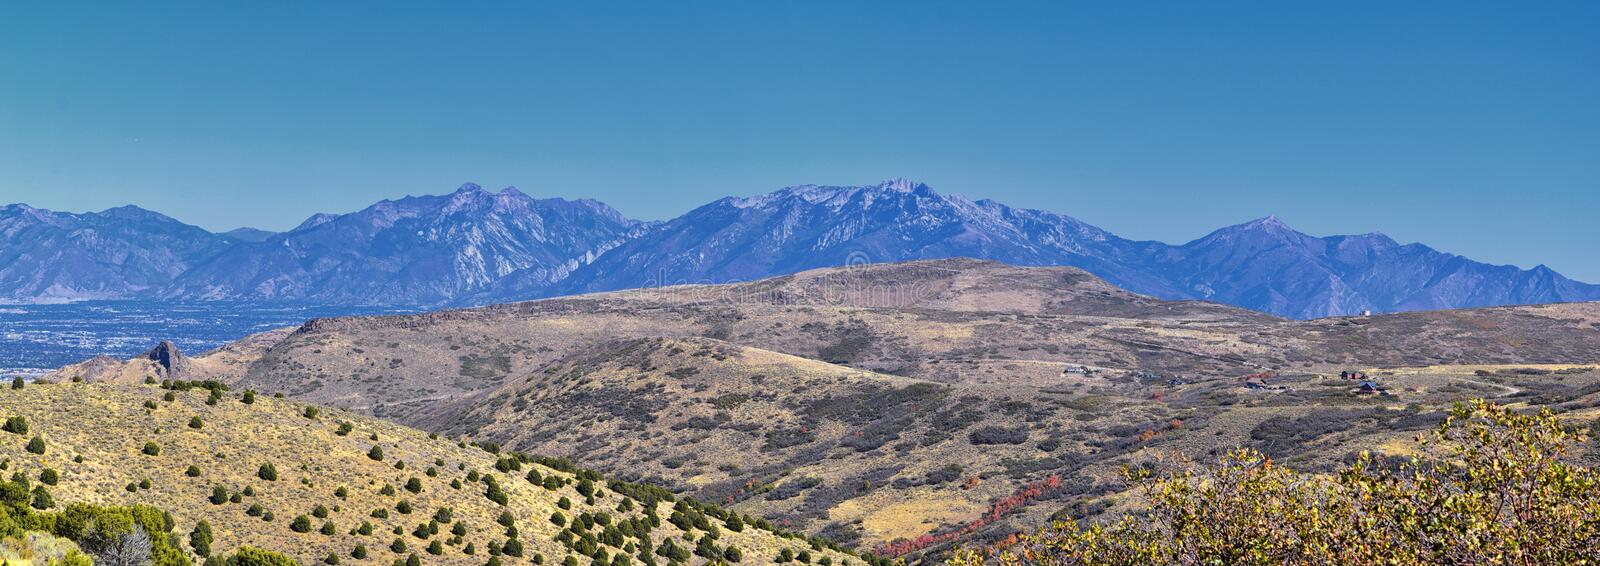 Views of Wasatch Front Rocky Mountains from the Oquirrh Mountains with fall leaves, Hiking in Yellow Fork trail Rose Canyon Utah stock photos